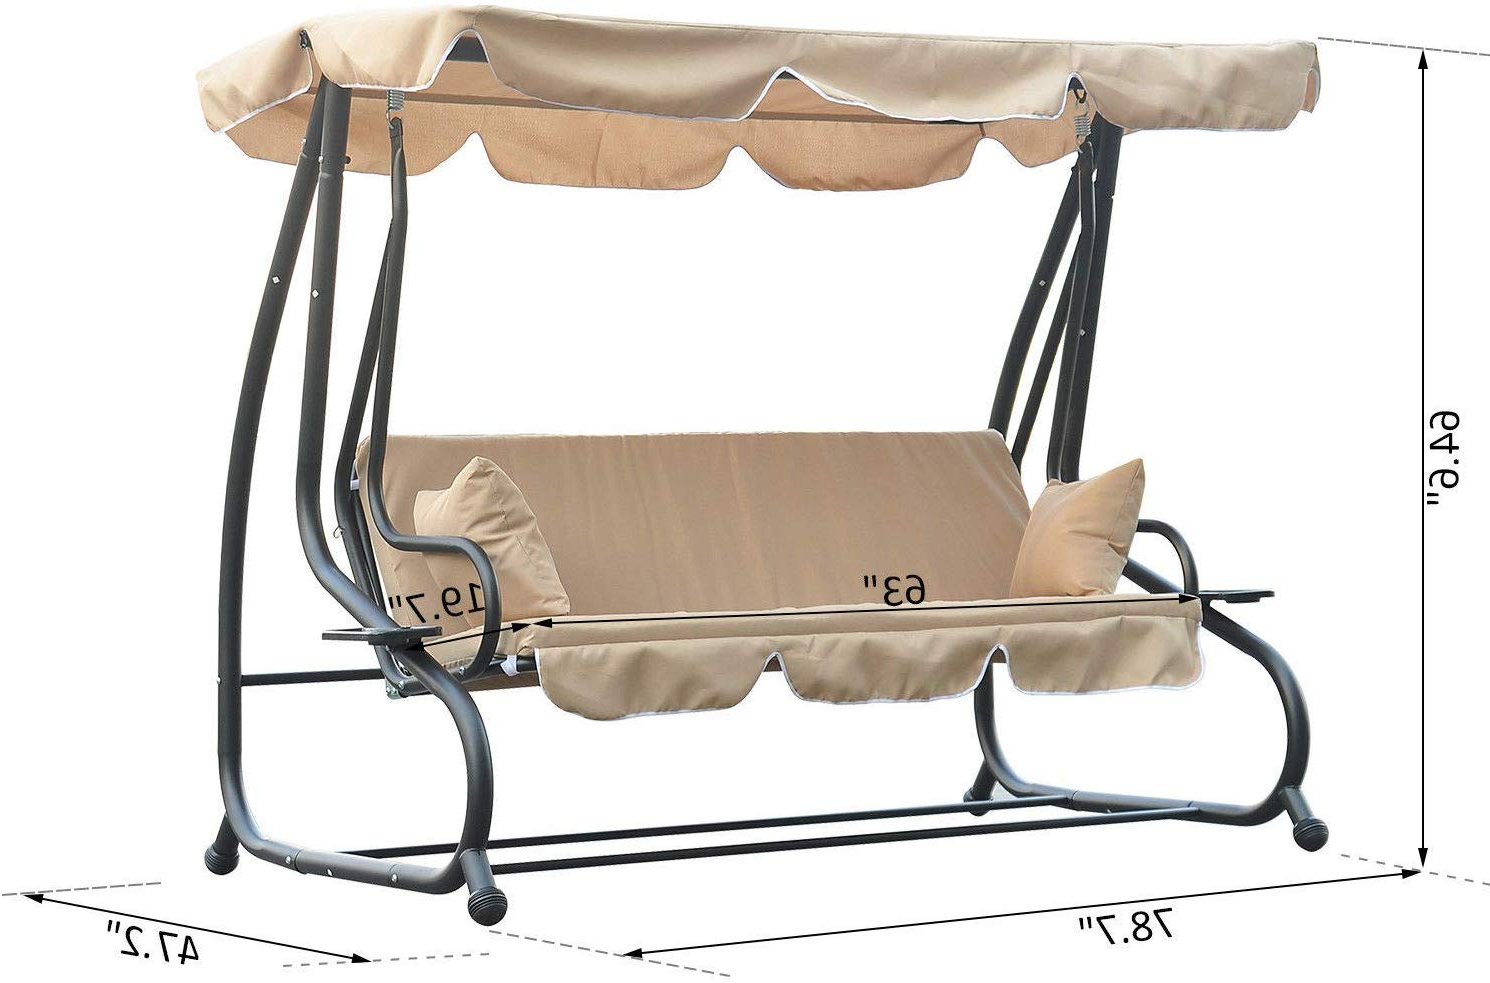 Amazon : Allblessings Patio 3 Seated Porch Swing Hammock In Preferred 2 Person Adjustable Tilt Canopy Patio Loveseat Porch Swings (View 8 of 30)